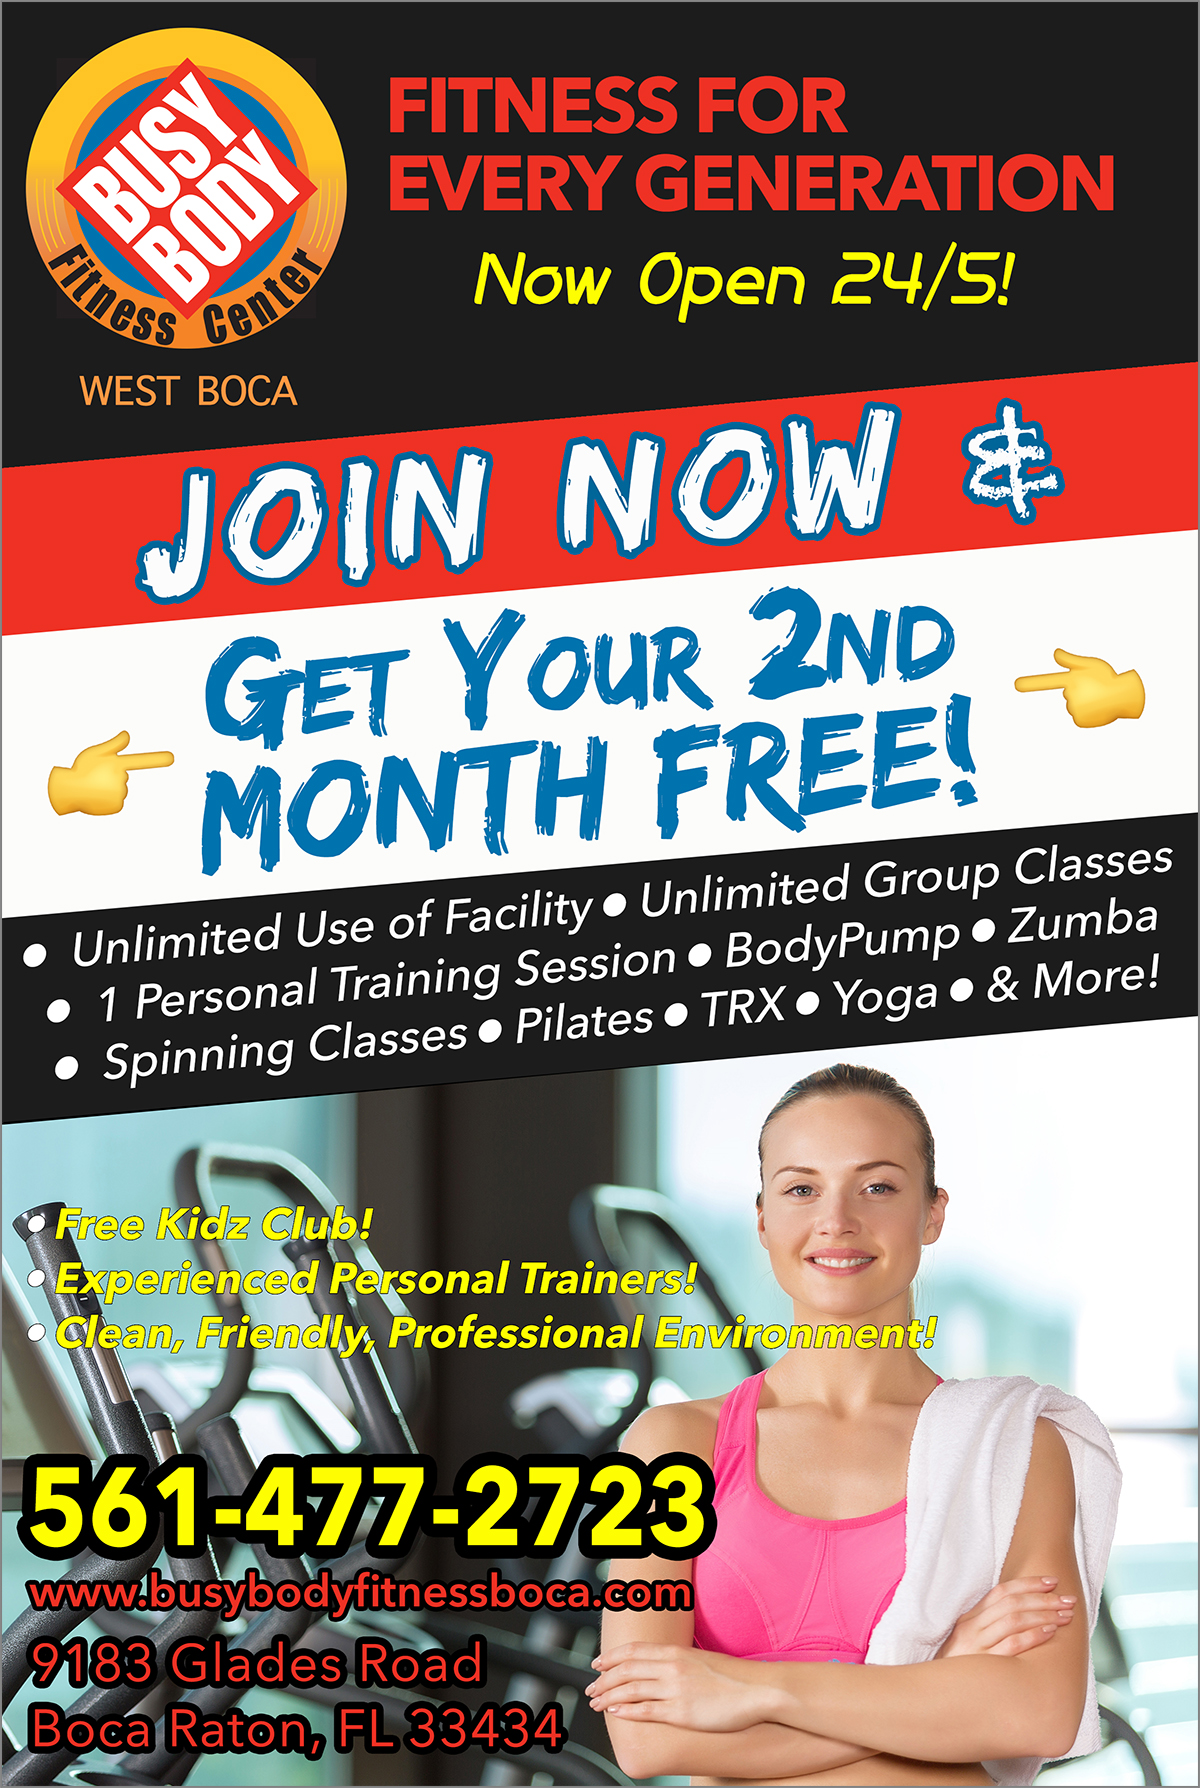 Join Now & Get Your 2nd Month Free